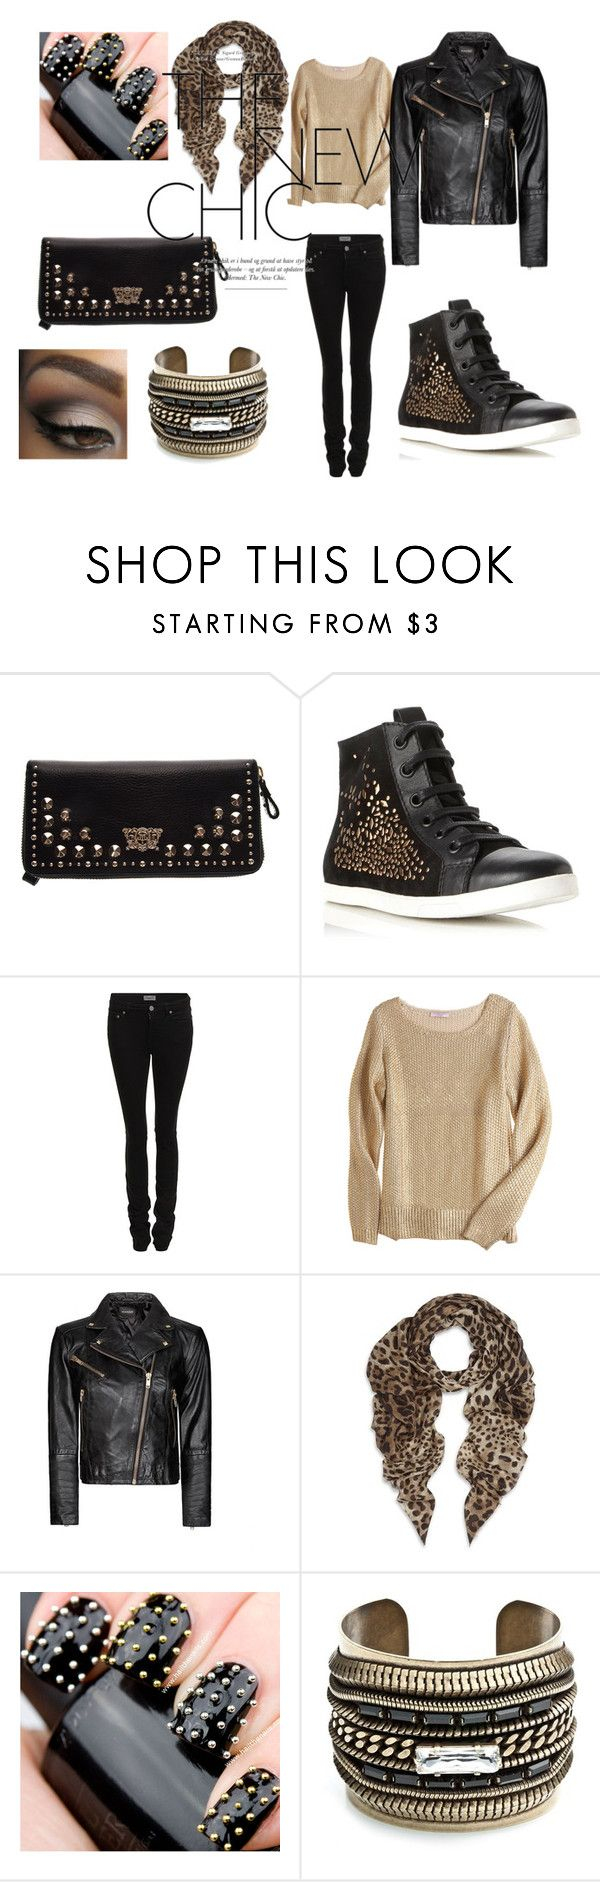 Style 2013 by raluca-belu on Polyvore featuring Calypso St. Barth, MANGO, Filippa K, Dune, Juicy Couture, DANNIJO and Dolce&Gabbana